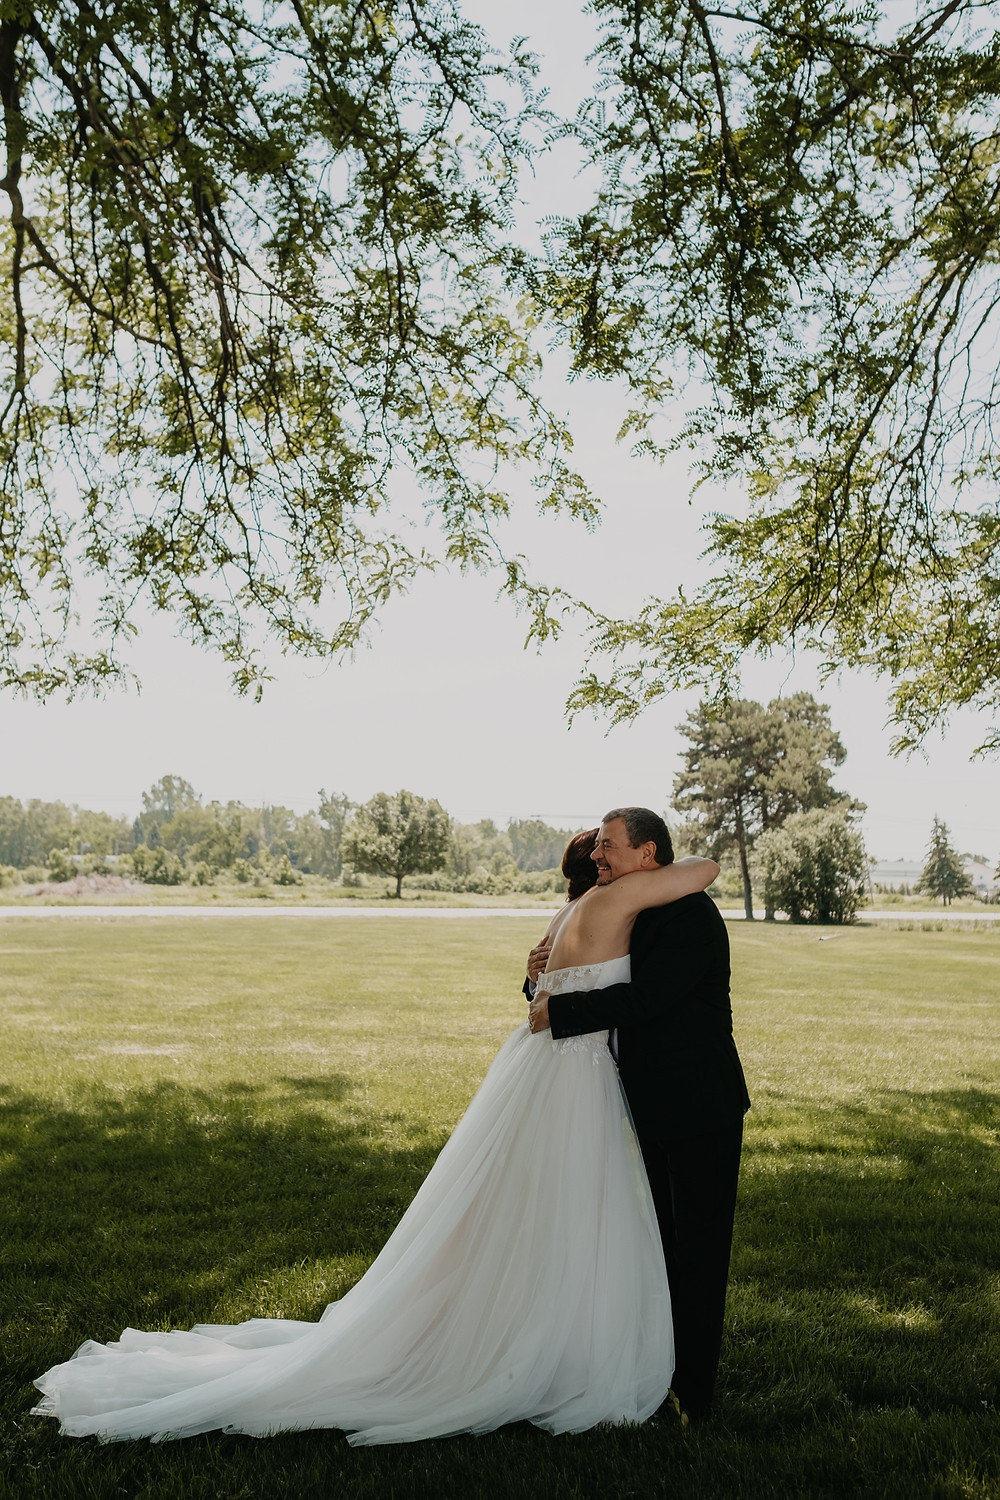 First look with father of the bride. Photographed by Nicole Leanne Photography.